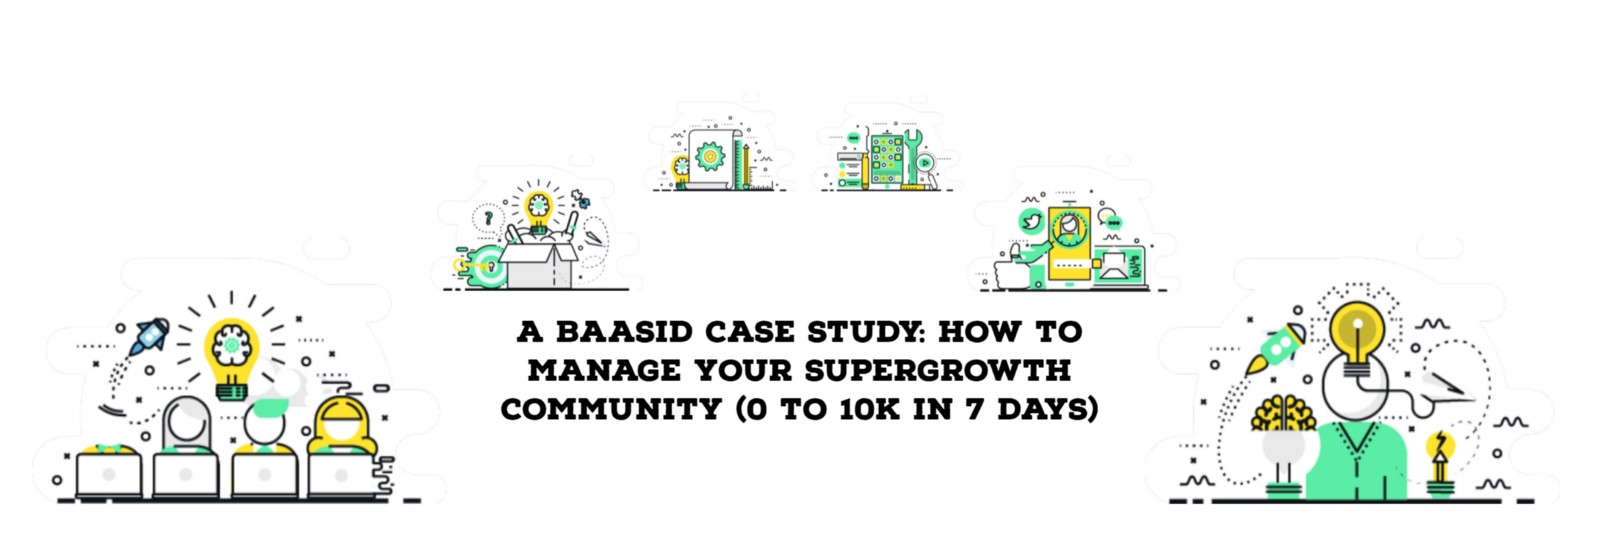 /a-baasid-case-study-how-to-manage-your-supergrowth-community-0-to-10k-in-7-days-2836f2db4fd0 feature image